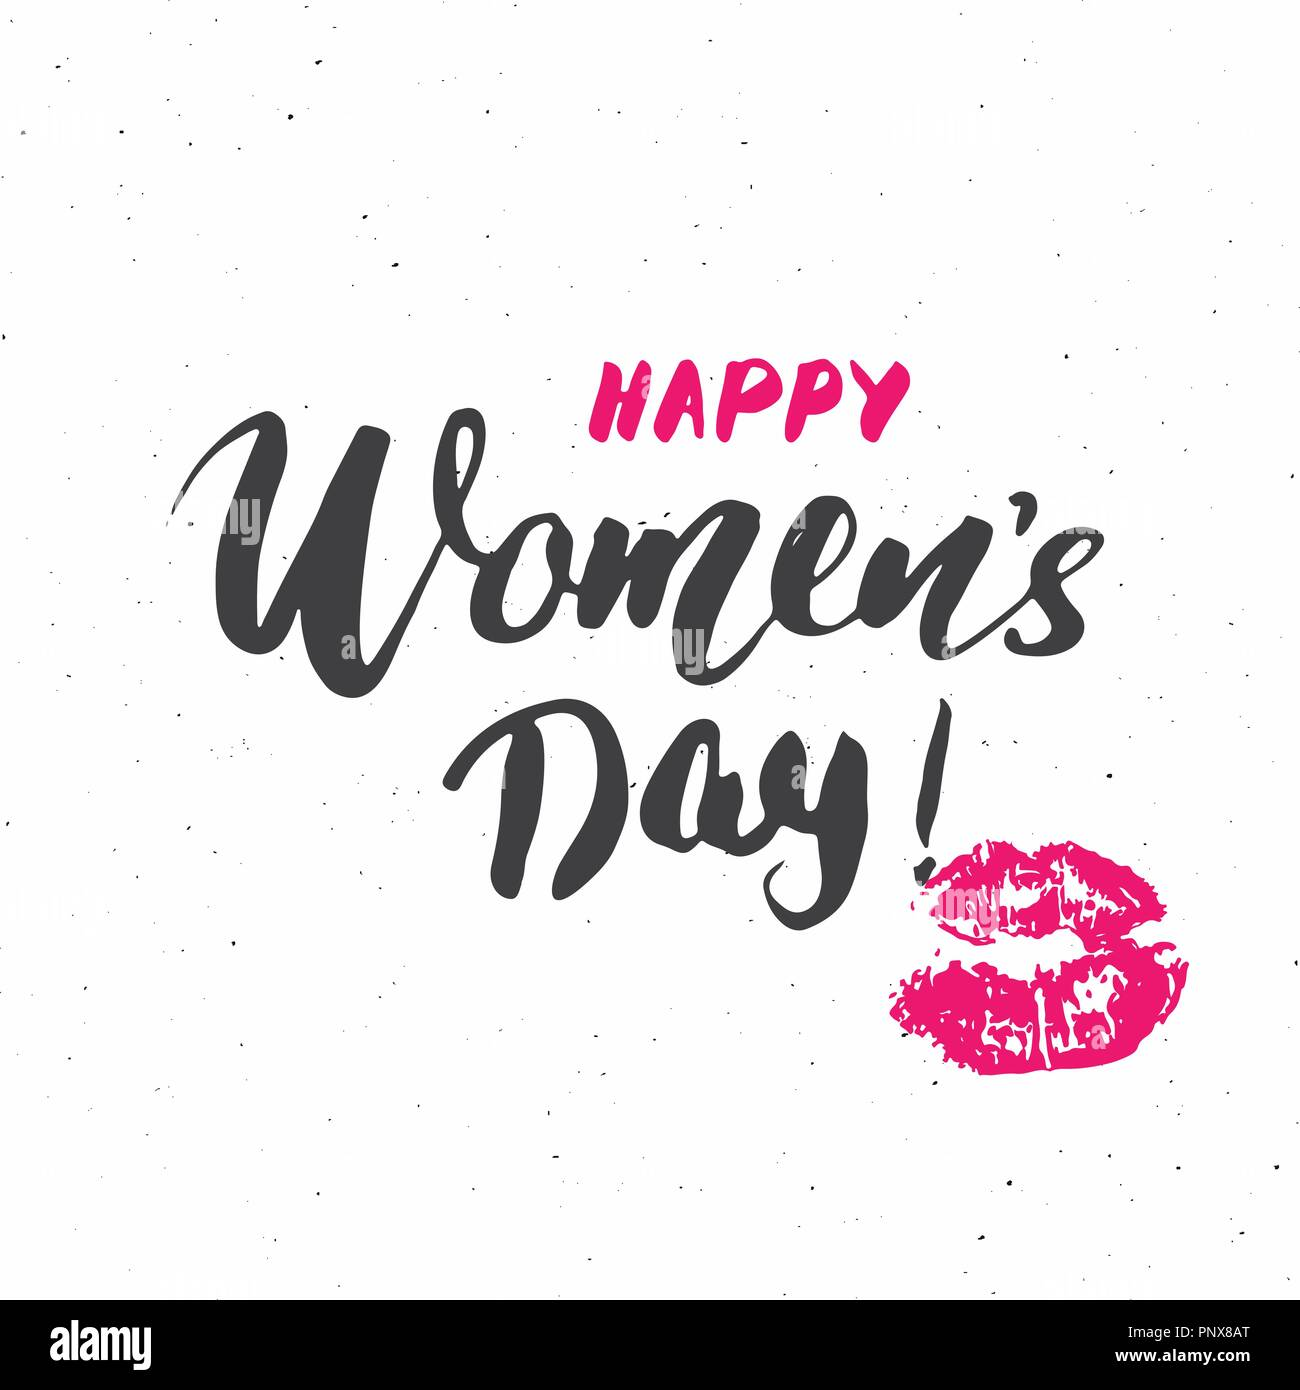 Happy Womens Day Hand Letterings Set Holiday Grunge Textured Retro